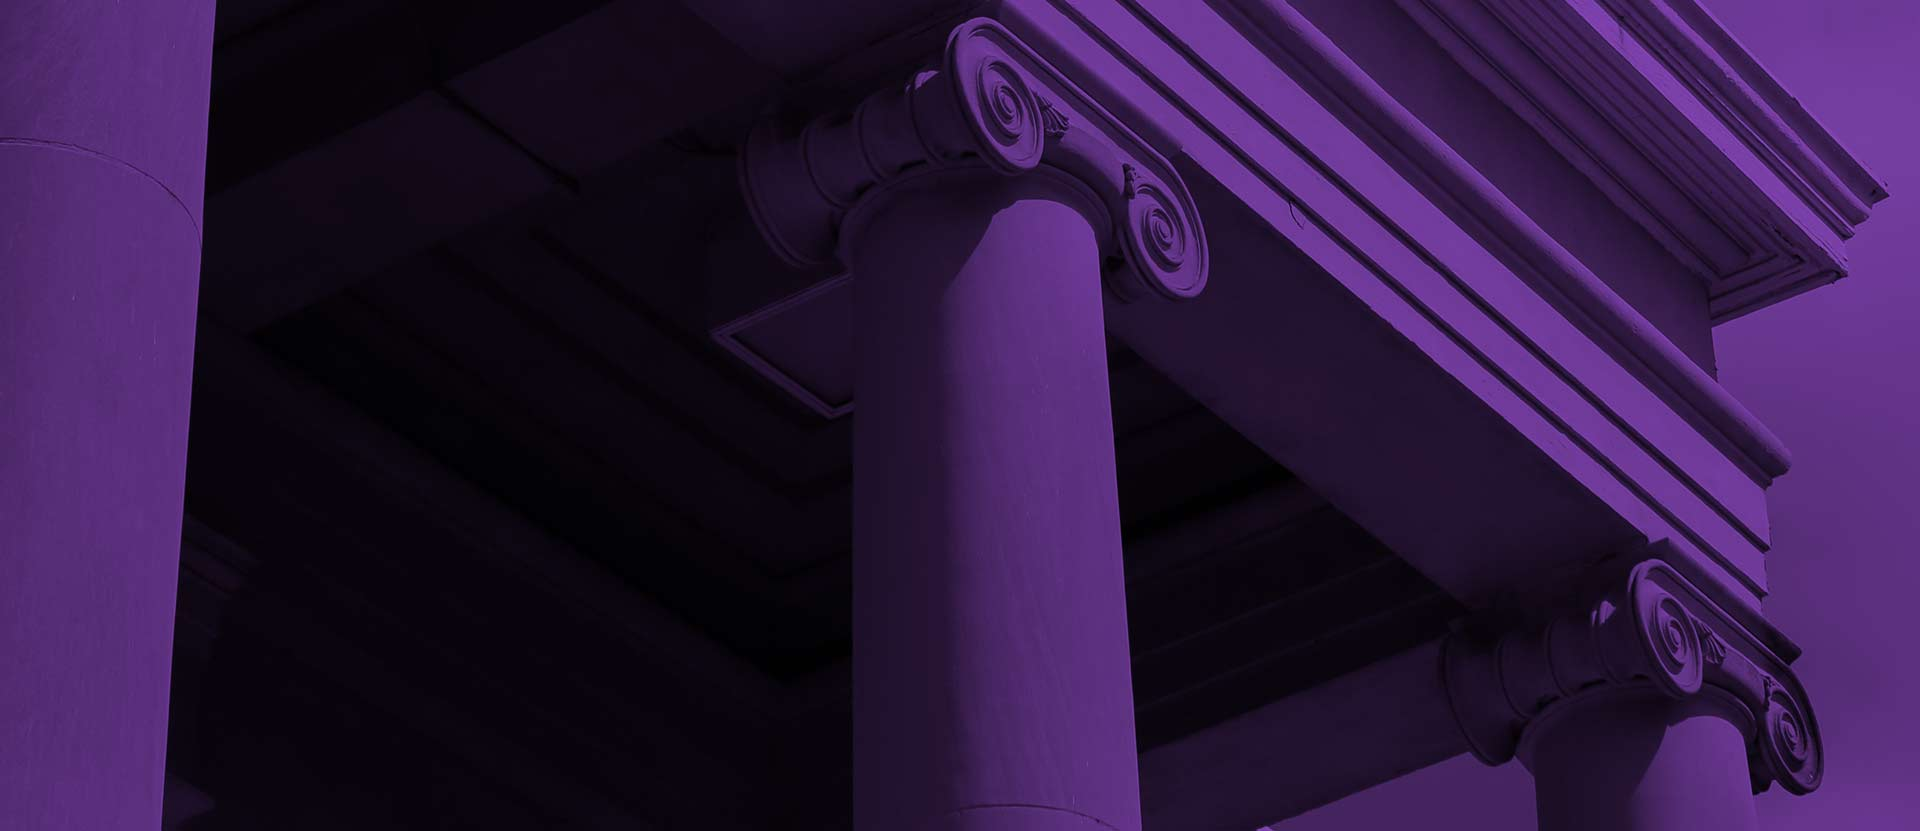 Columns of Candler building with purple overlay.